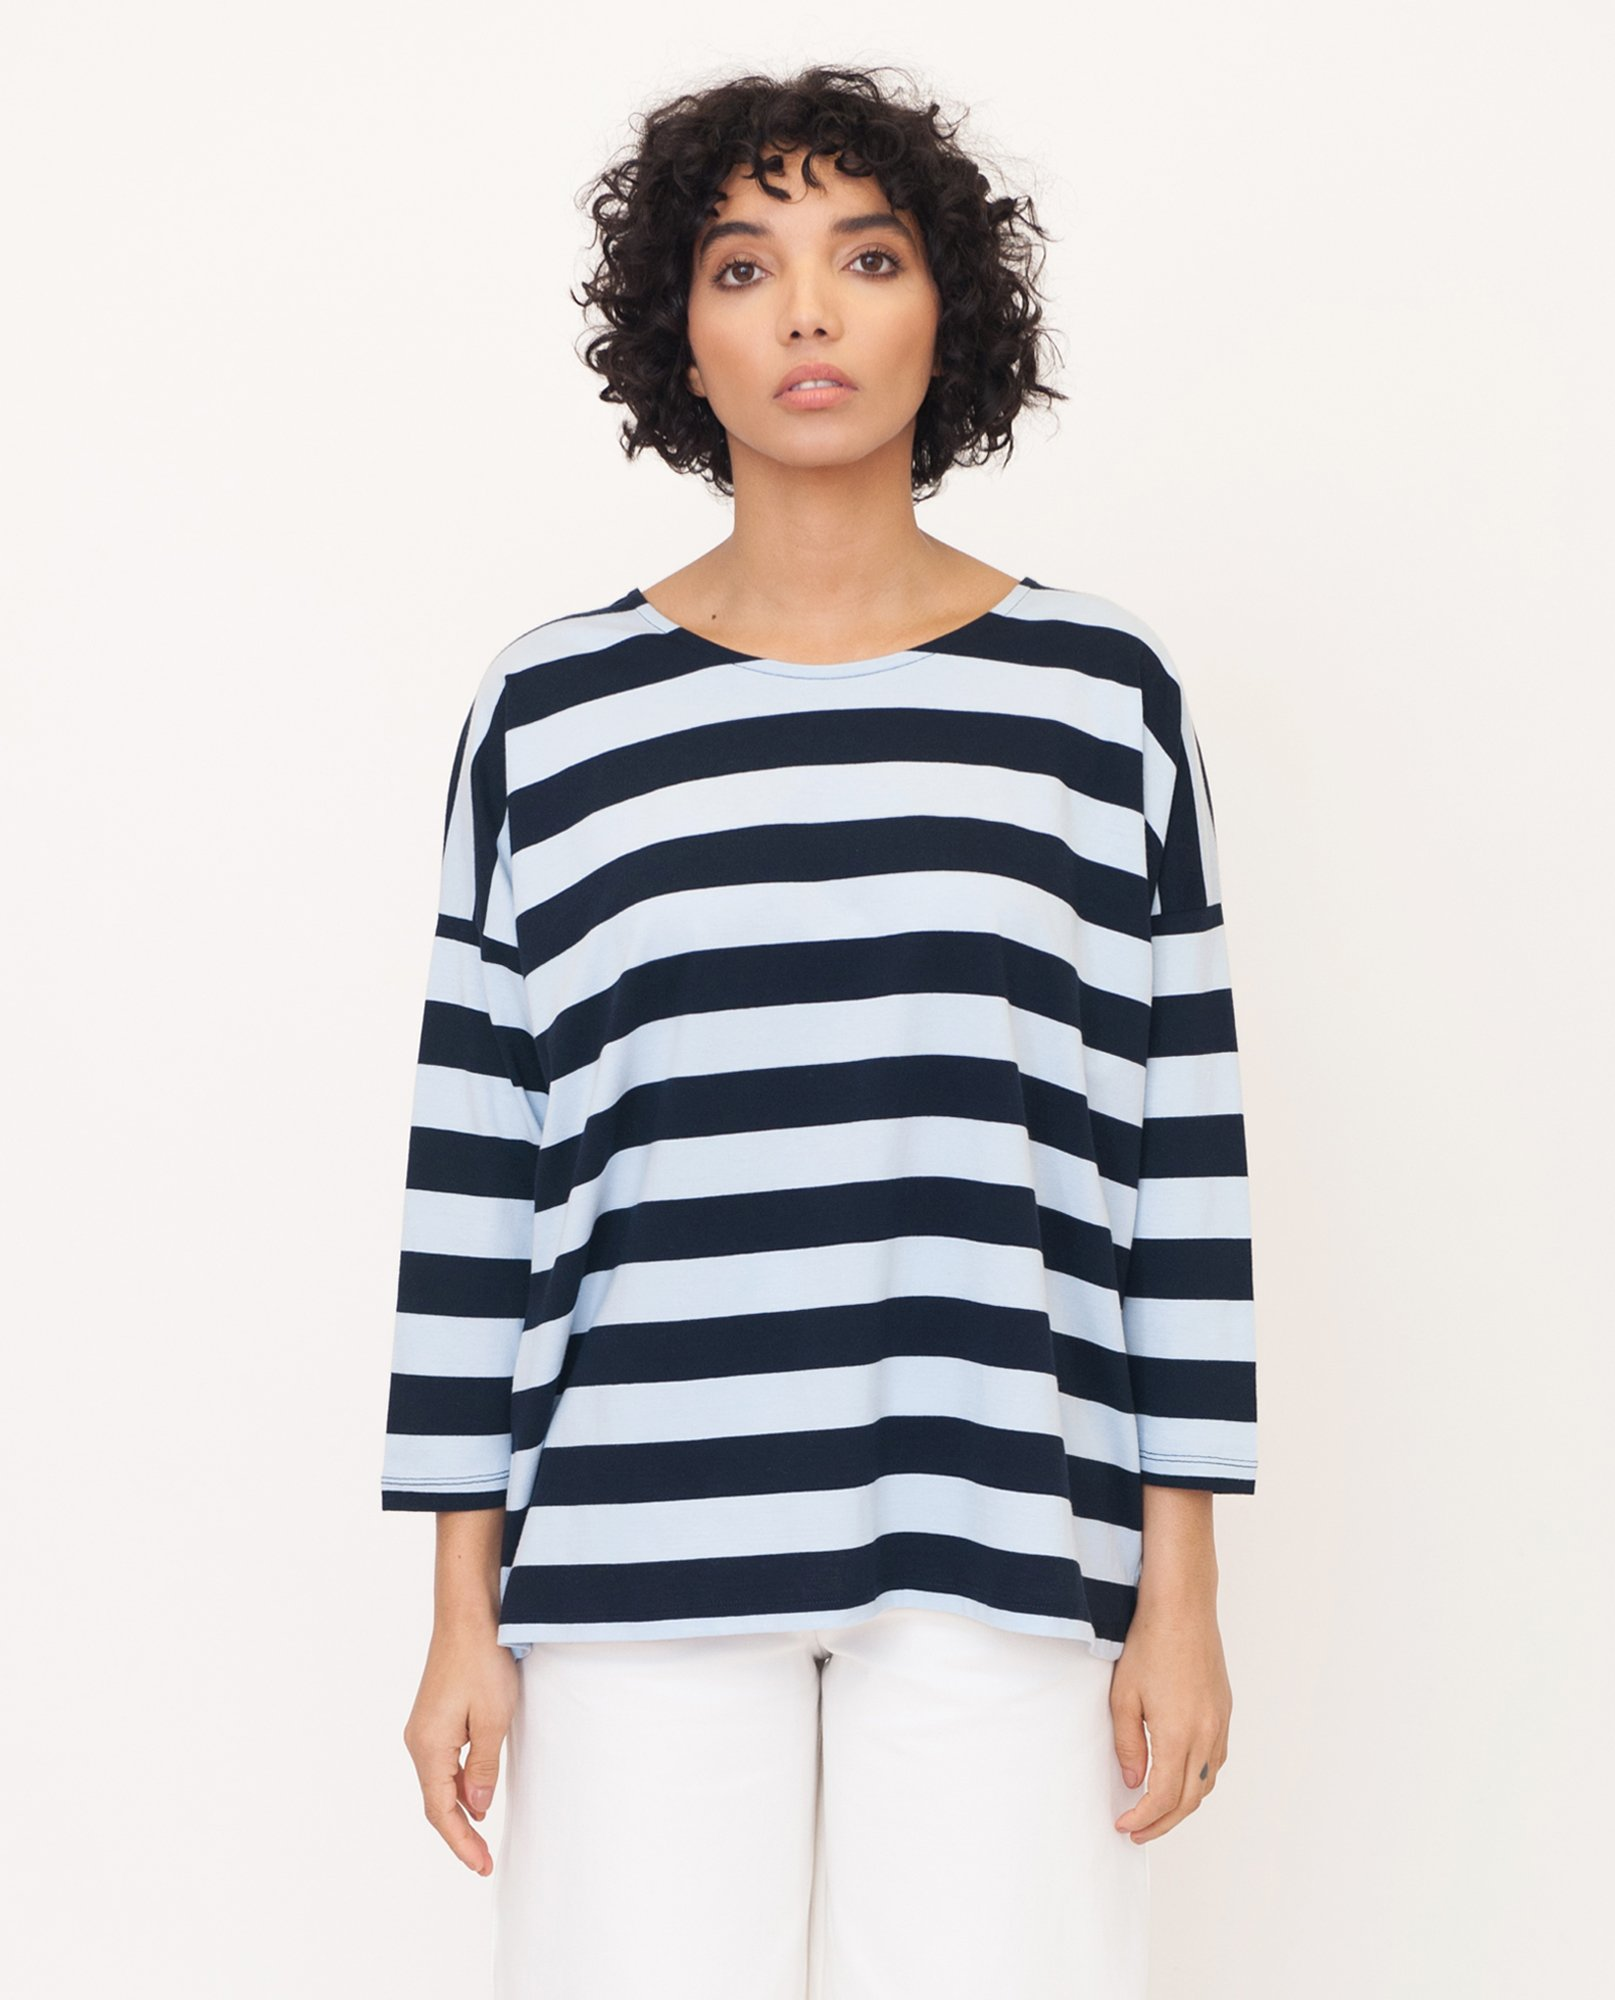 ROSIE Organic Cotton Top In Navy And Blue from Beaumont Organic